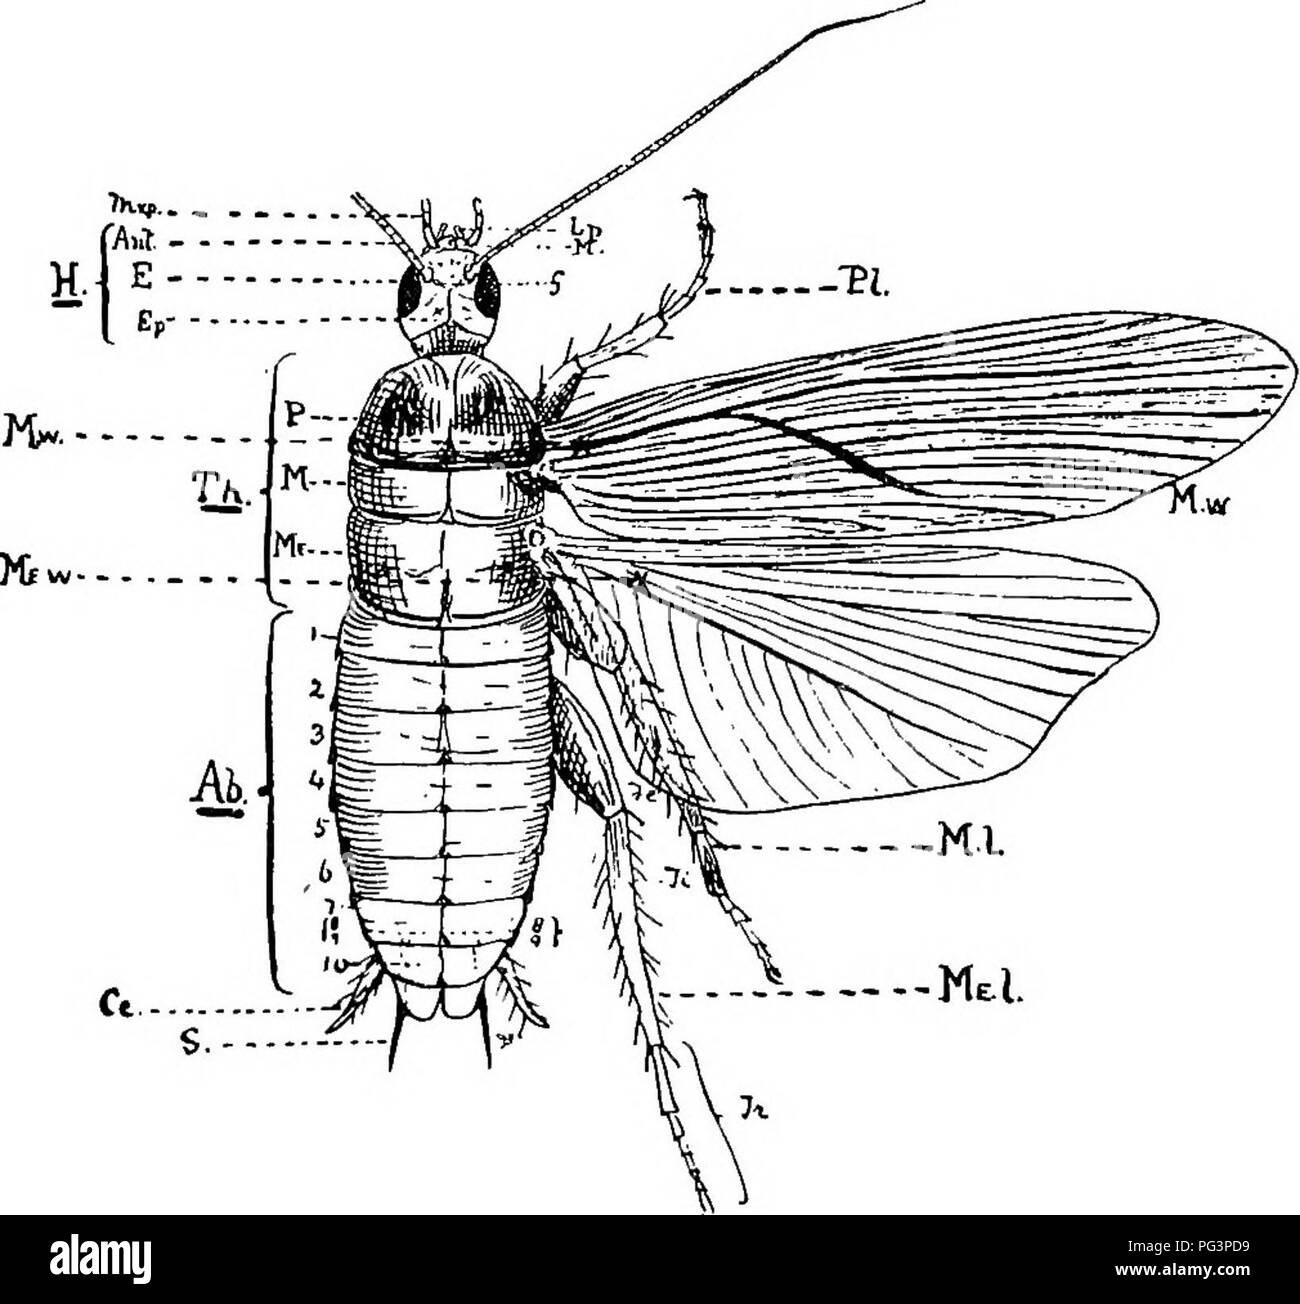 ". A text-book of agricultural zoology. Zoology, Economic. 90 ANATOMY OF AN AftTHEOPOD. 32 A, c), a broad plate, which is followed by a smaller plate united to the front of the clypeus, called the labrum or ""upper lip"" {L). The plate on each side below and behind the eyes is called the gena or cheek (G). Ocelli are absent in this type, other- wise they would be situated on the epicranium. The thorax. Fig. 31.—Structure of an Arthropod {Periplaneta wmeHcarm). Hf head; Th, thorax; Ab, abdomen; Mxp, maxillary palps; Zp, labial palps; Jlf, maxillse; Antf antennae; E, eyes; Ep, epicranium; - Stock Image"